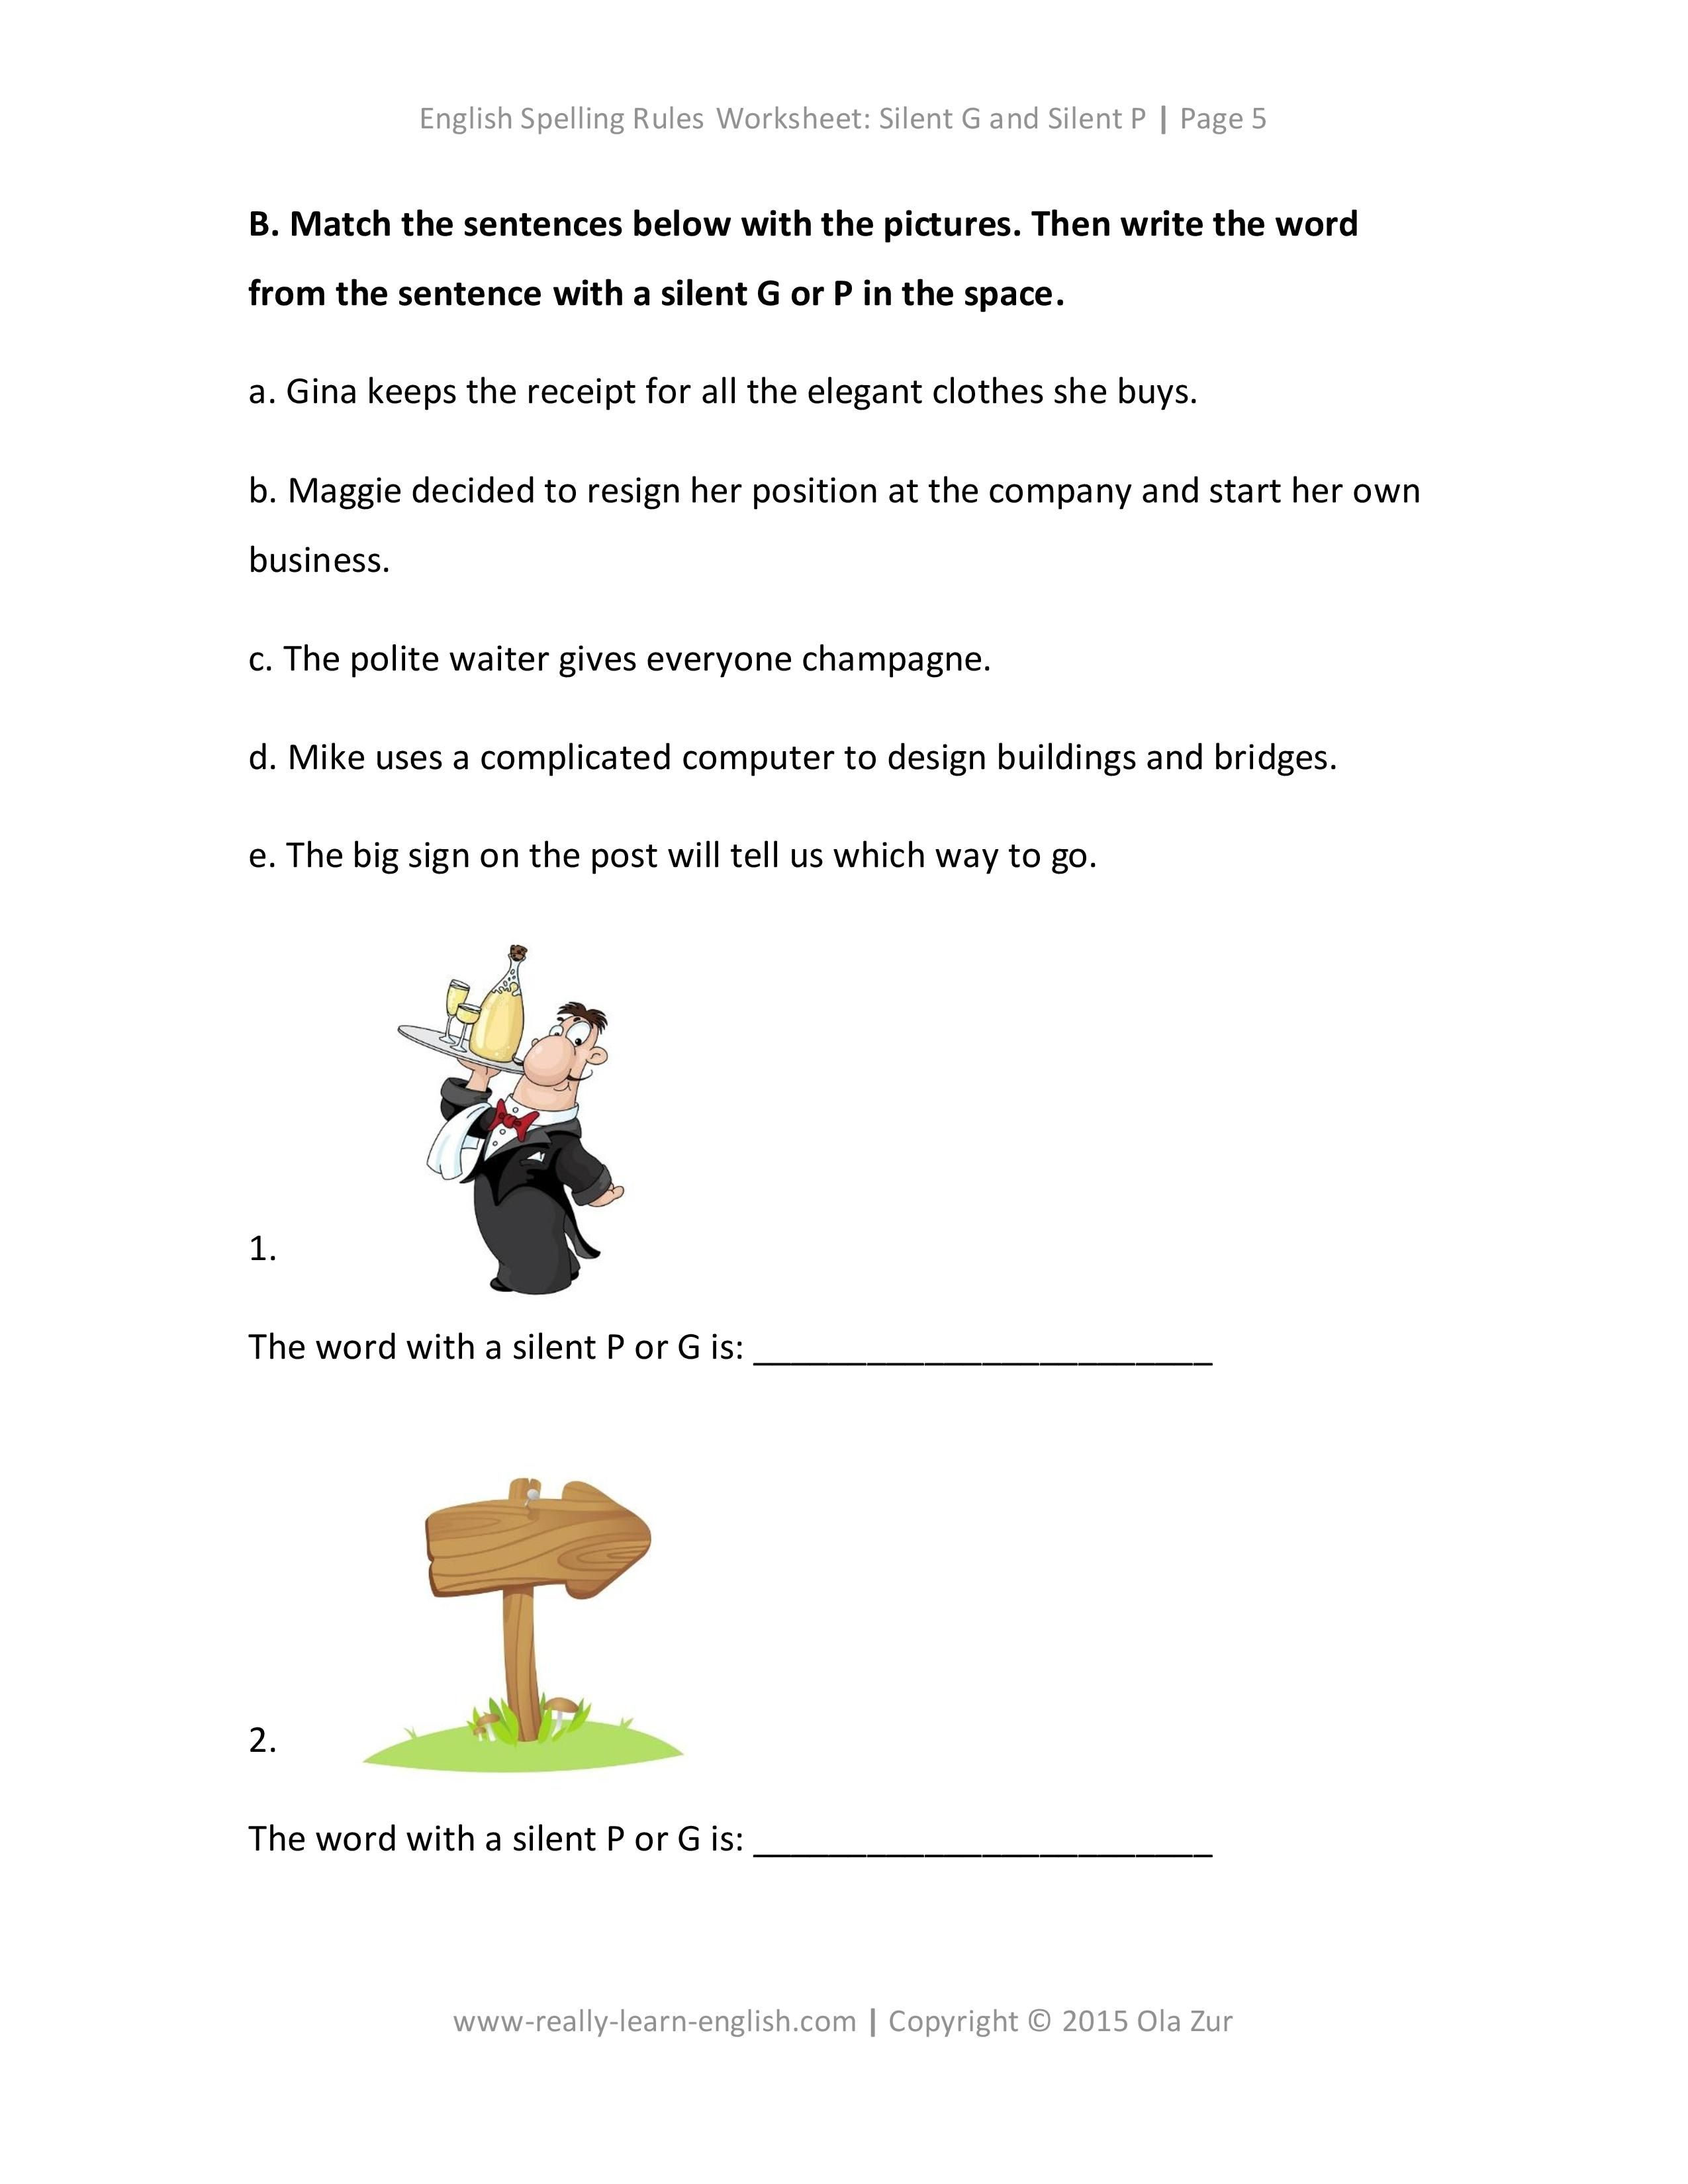 Free Printable Worksheets To Practice English Spelling Rules For Esl Students